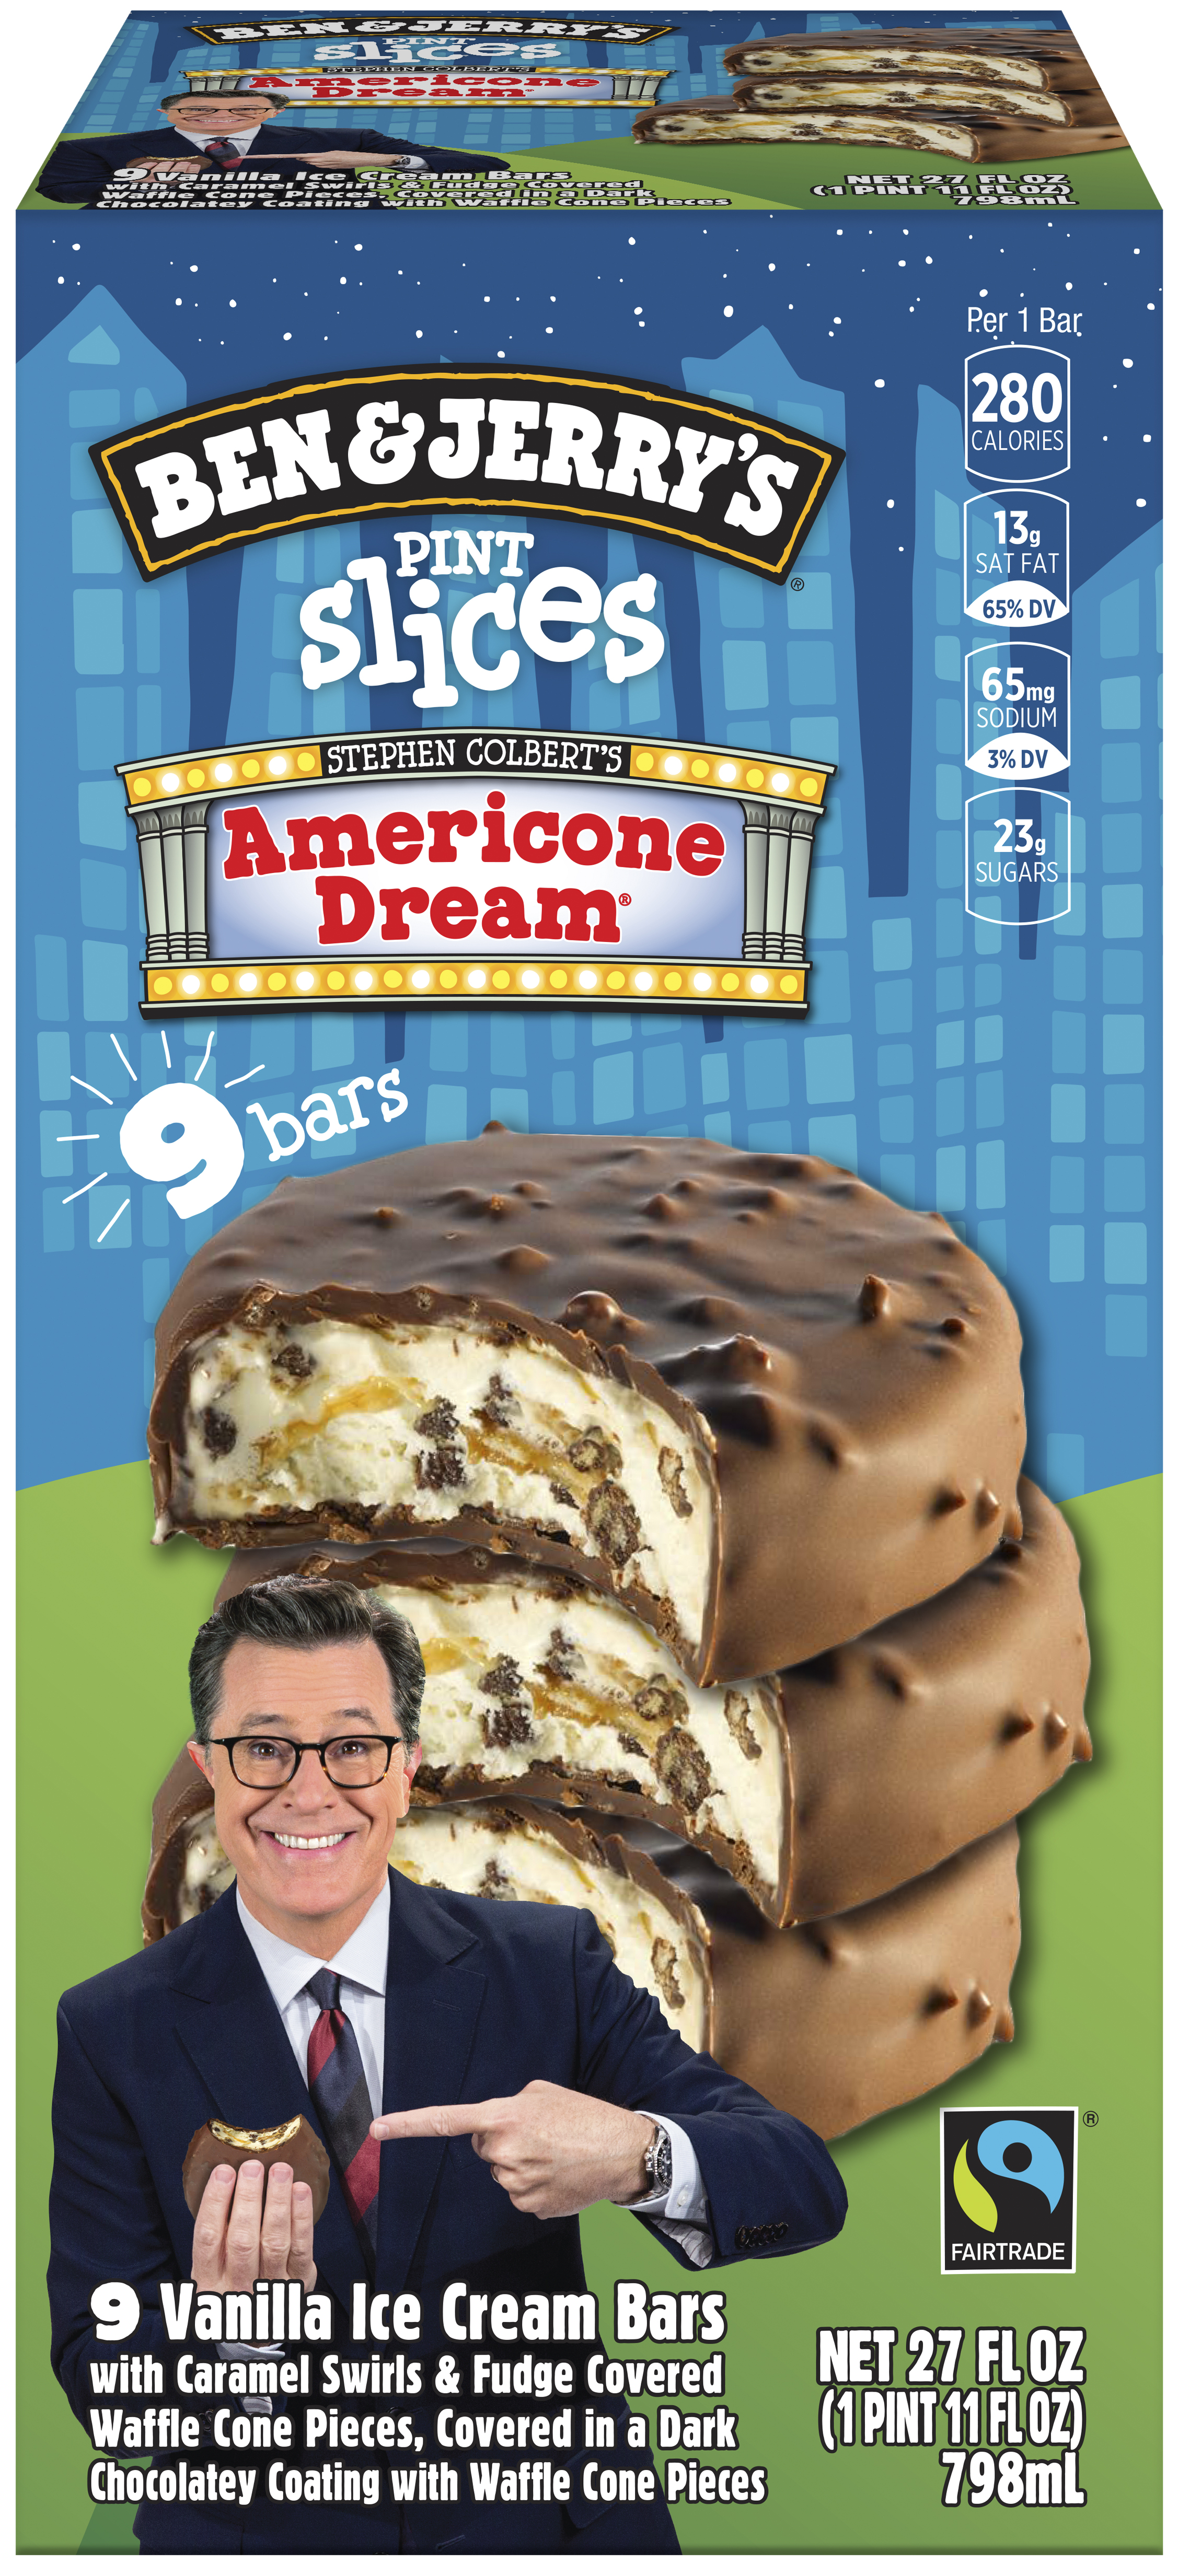 Smartlabel Americone Dream Vanilla Ice Cream With Caramel Swirls Fudge Covered Waffle Cone Pieces Covered In A Dark Chocolatey Coating With Waffle Cone Pieces Bars 076840001675 On this show the we crew will review misc ice cream products. fudge covered waffle cone pieces